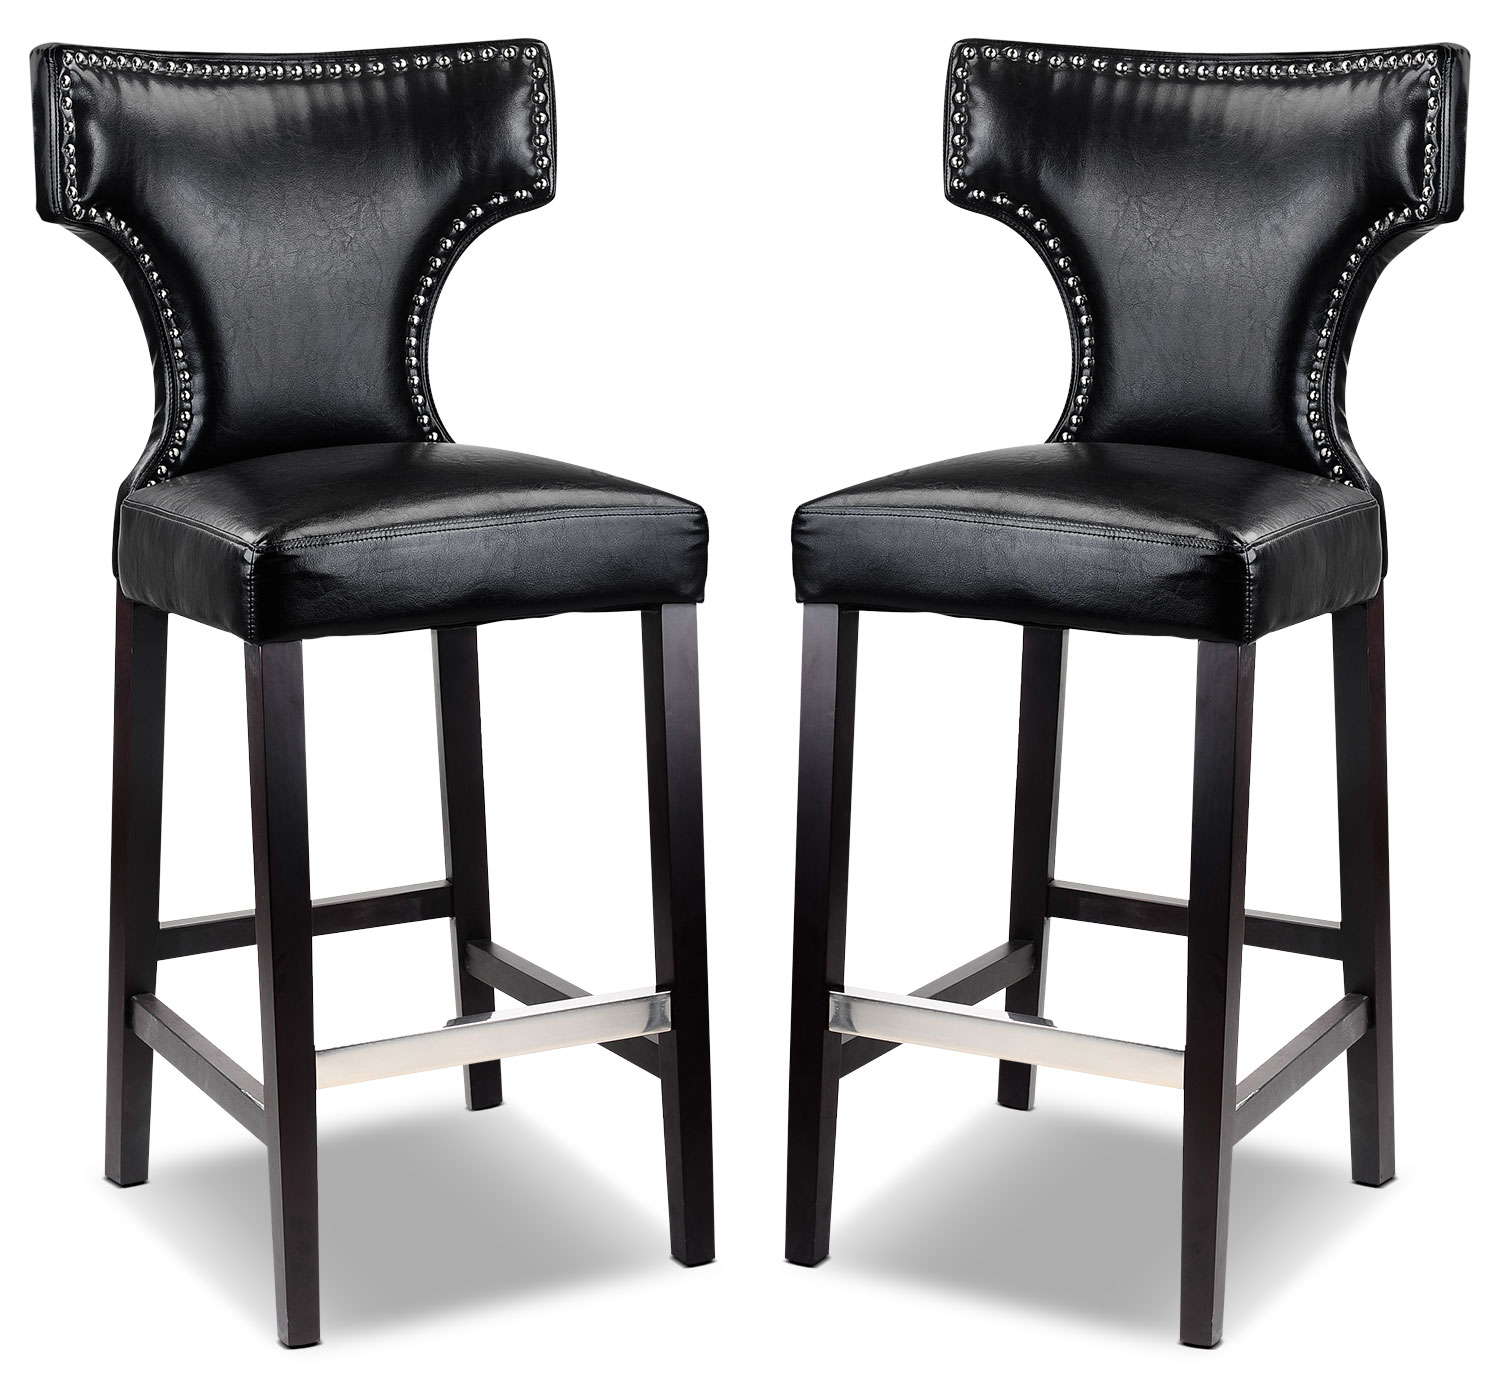 Kings Bar Stool with Metal Studs, Set of 2 – Black